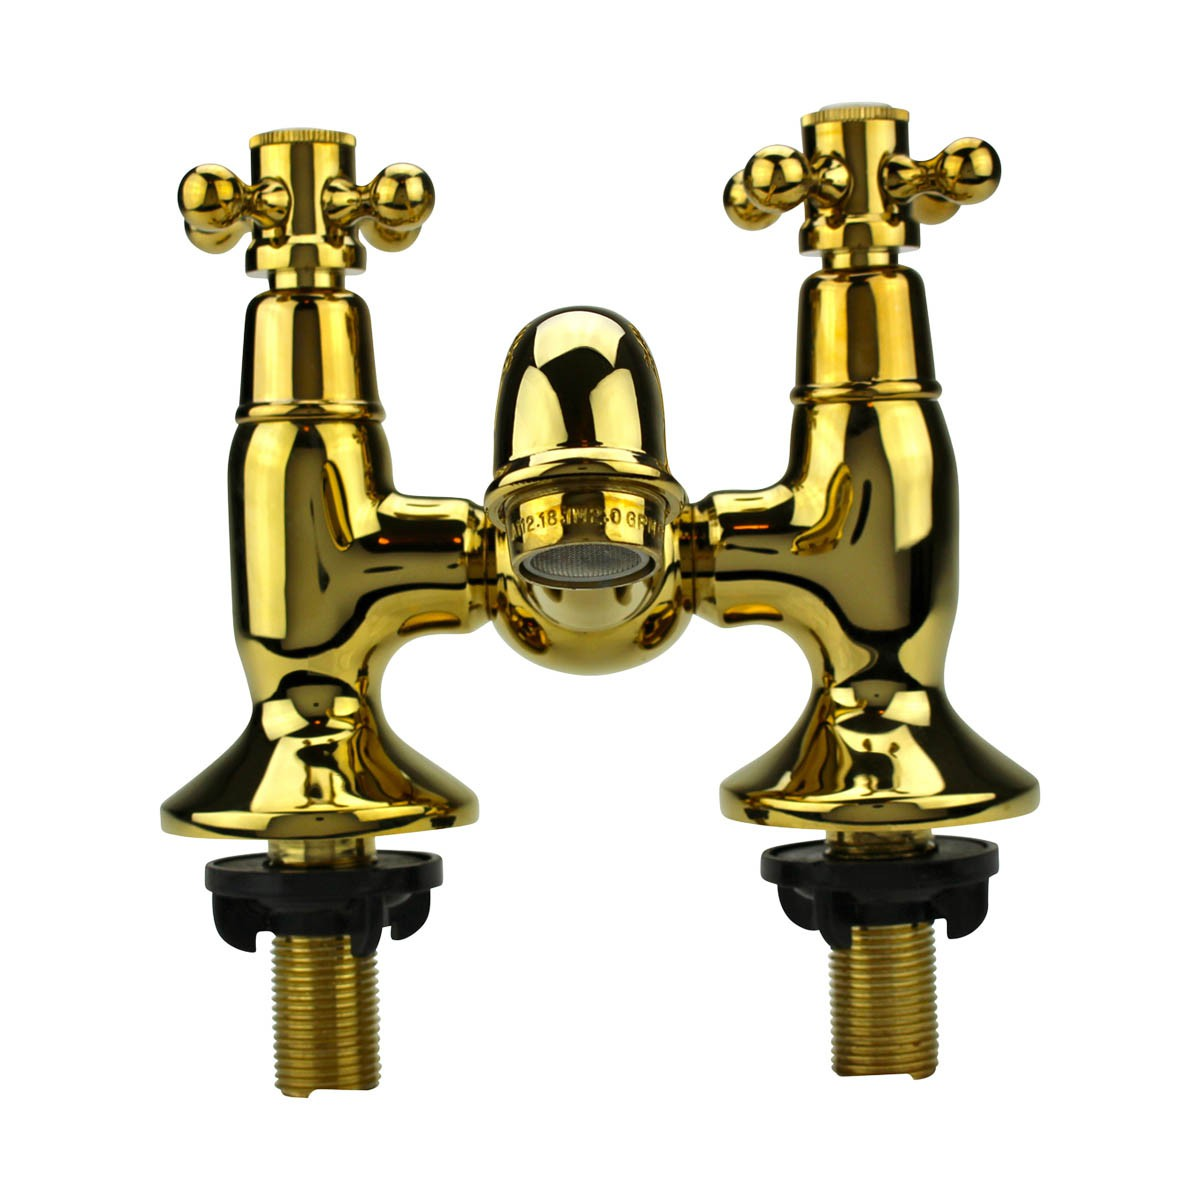 Tub Faucet Solid Brass Bridge 2 Cross Handle 4 Centerset plumbing modern contemporary chic design antique traditional classic authentic vintage unique fixtures accessories